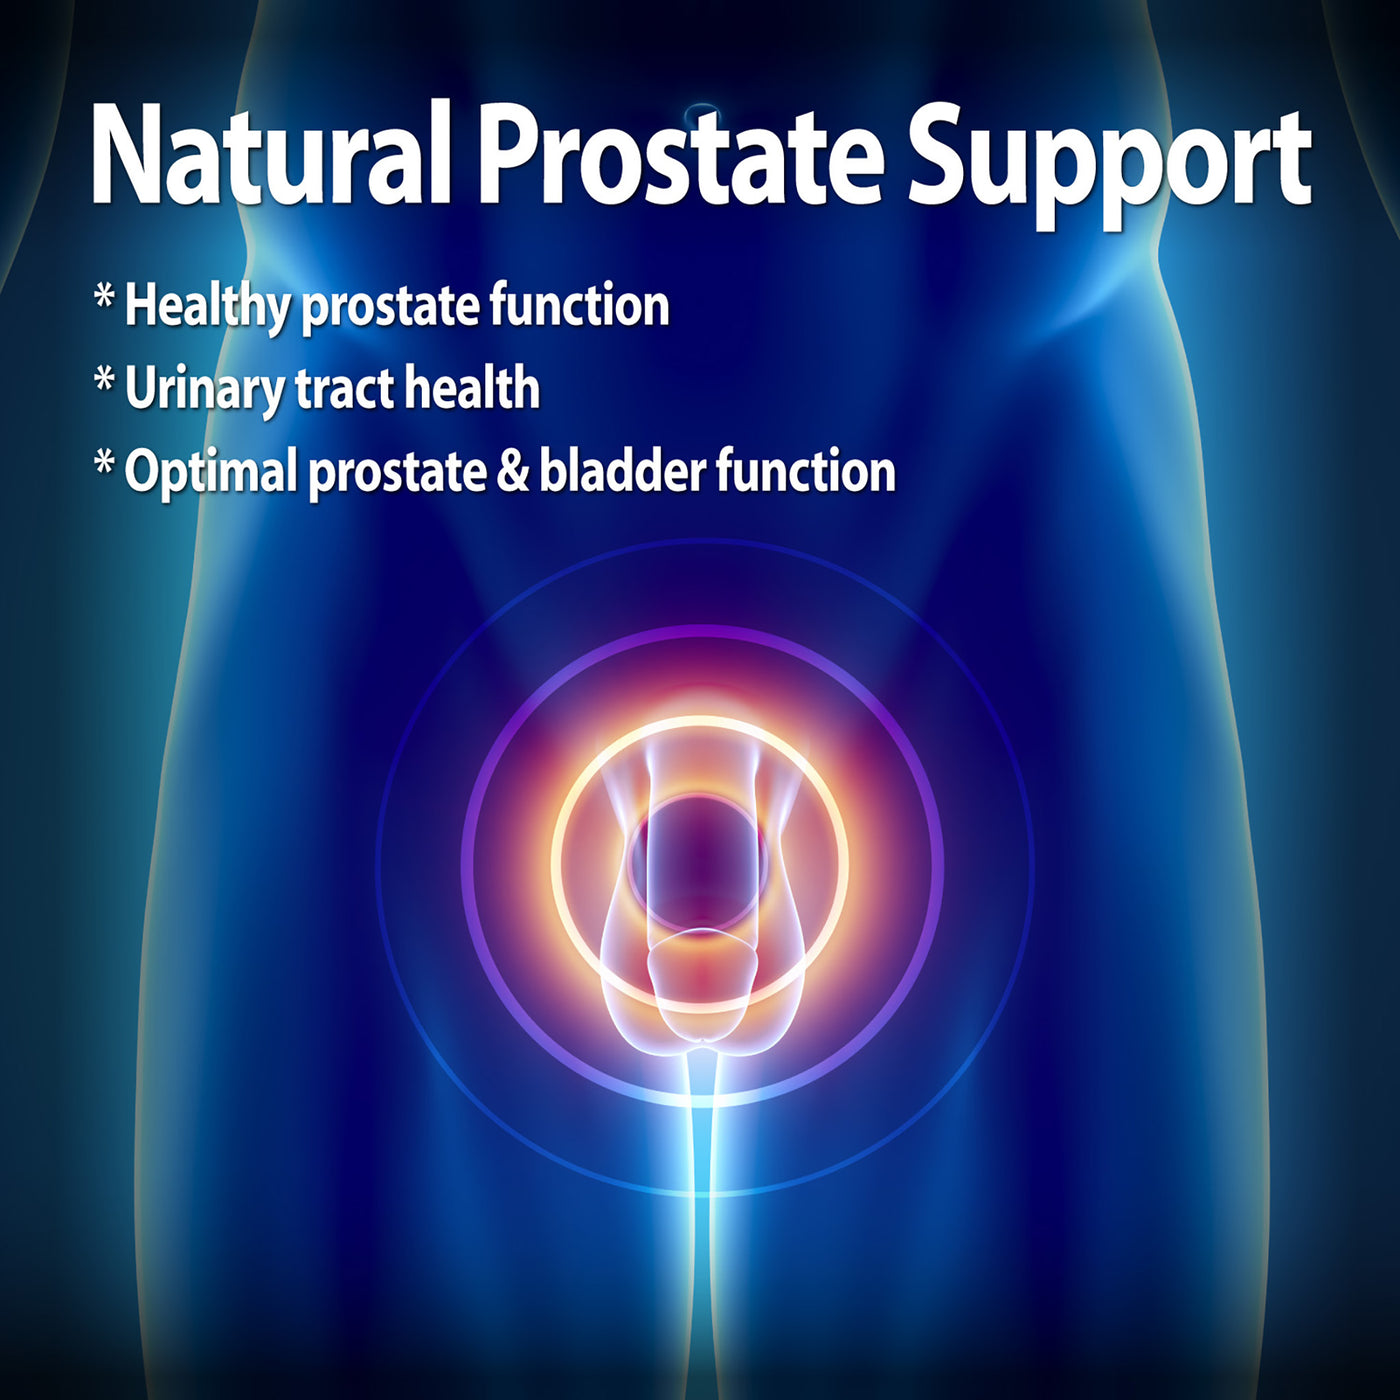 Natural Prostate Support